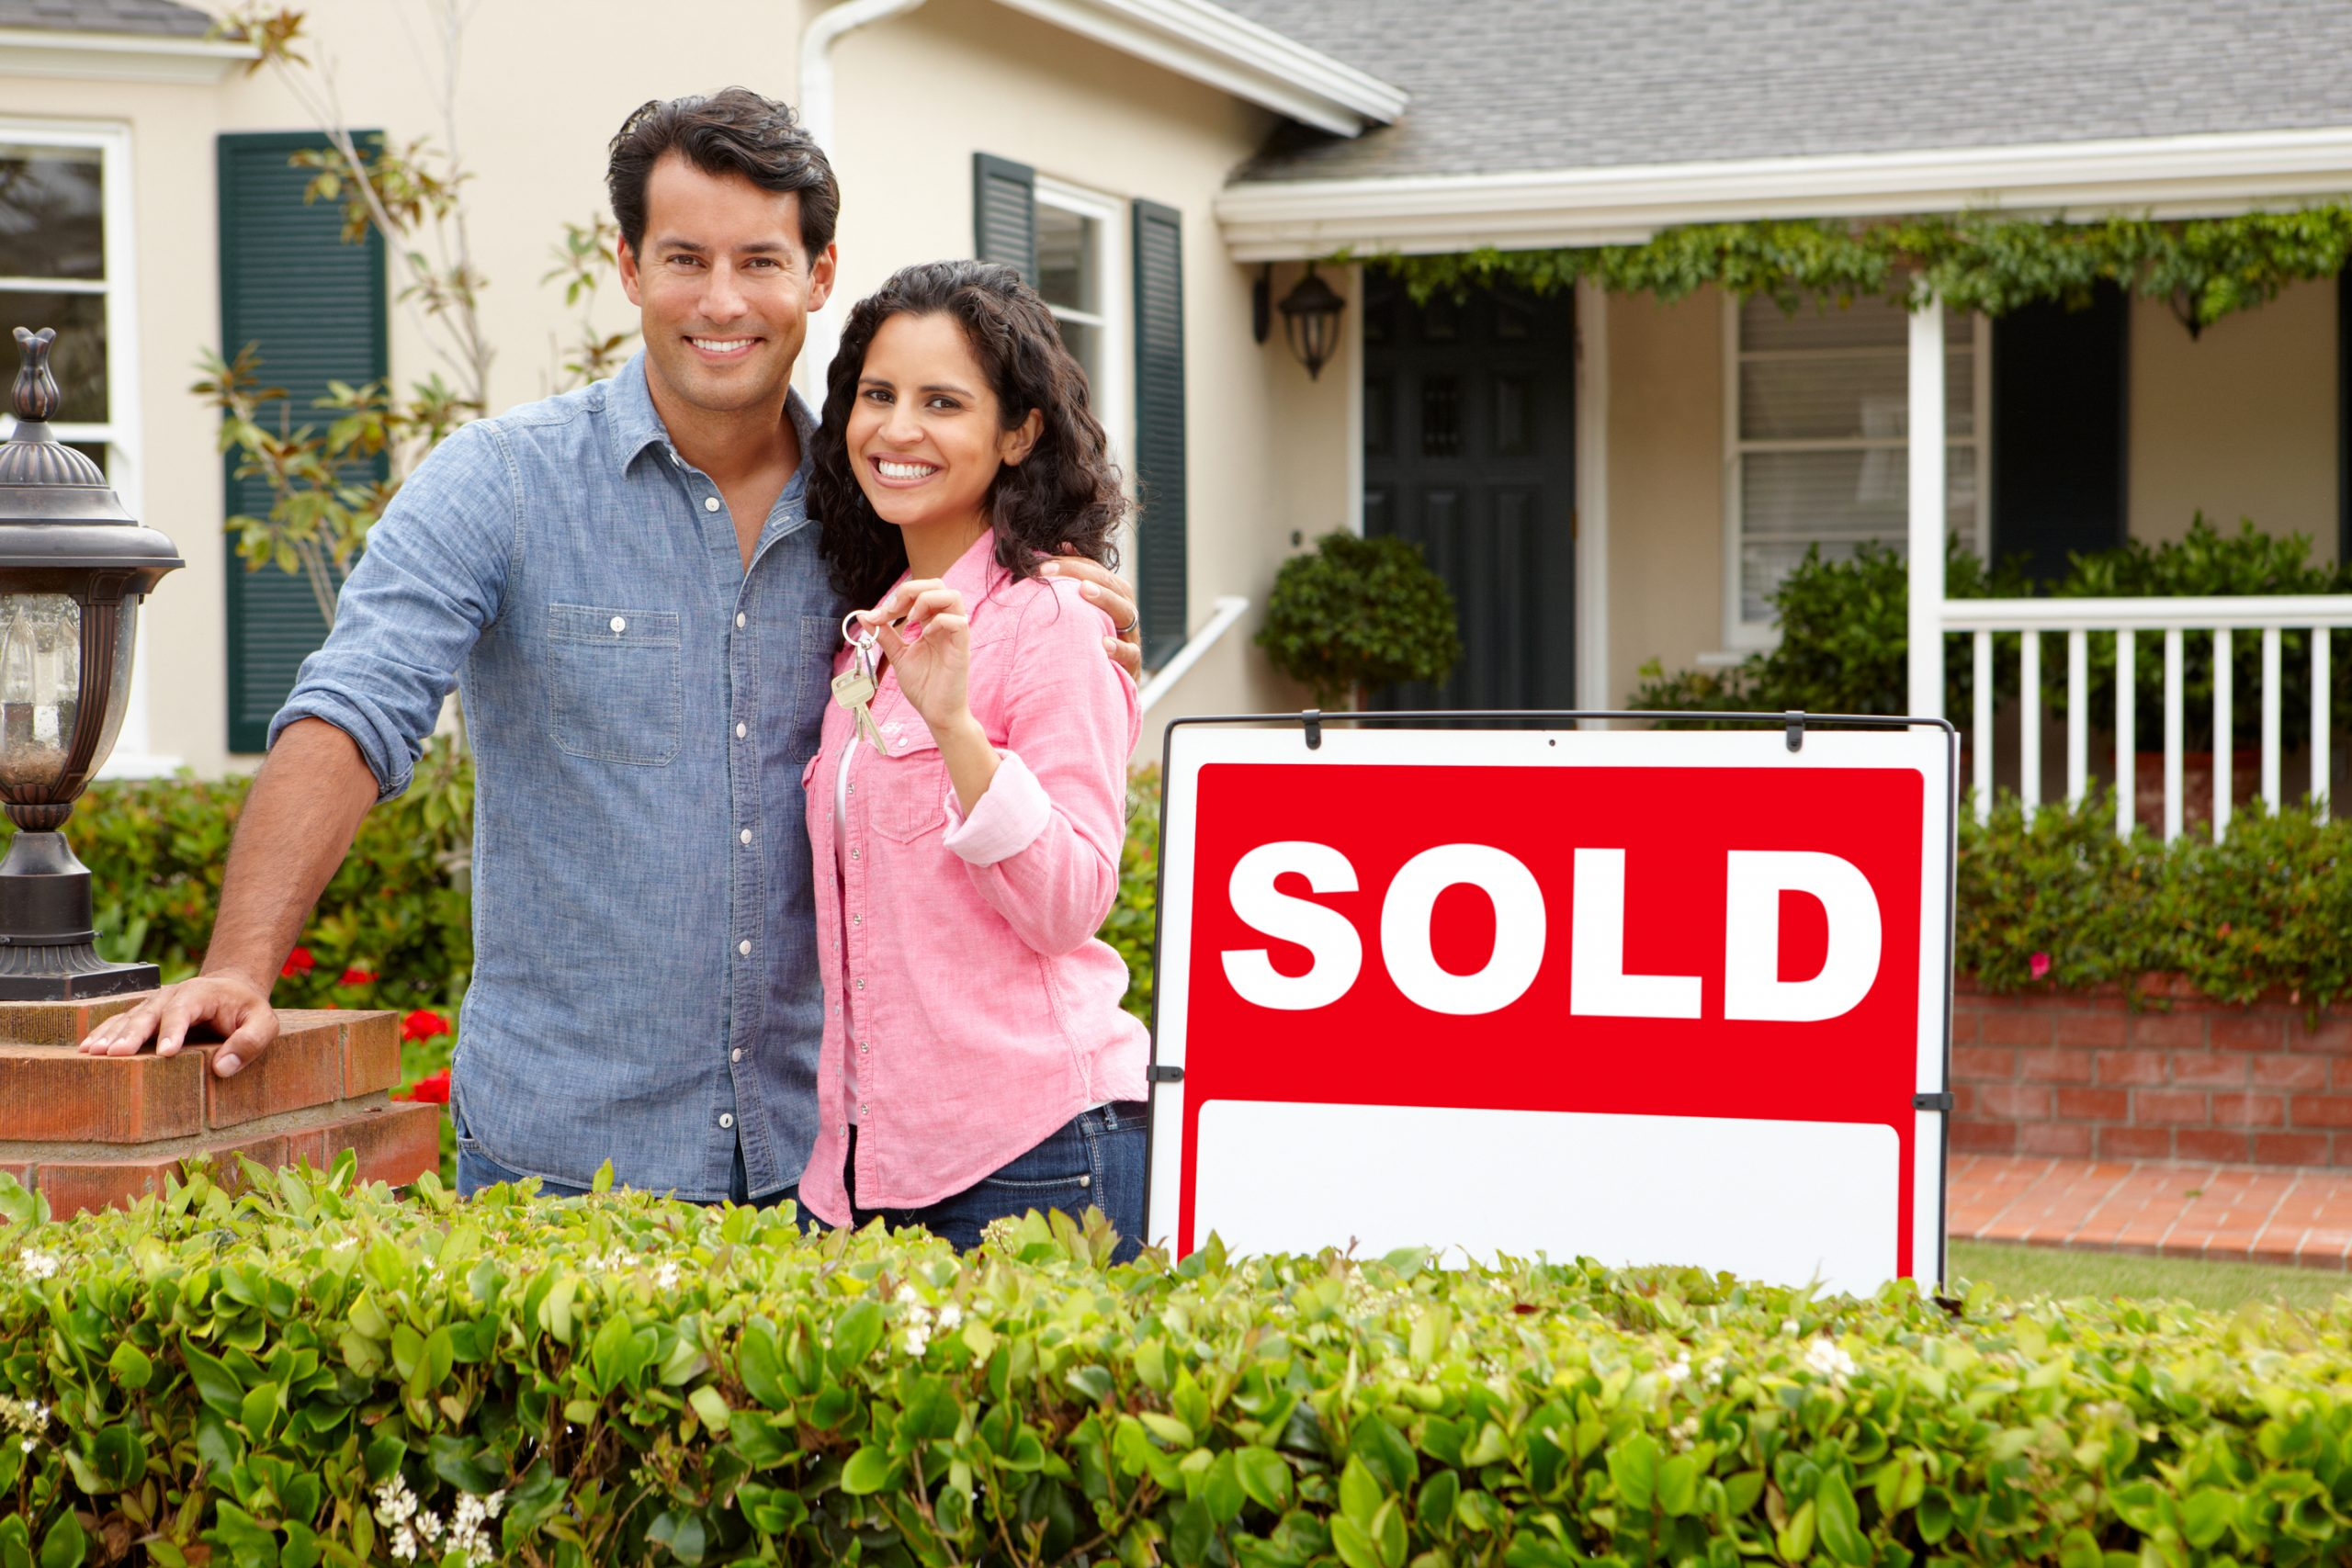 how to sell your home to get attractive returns